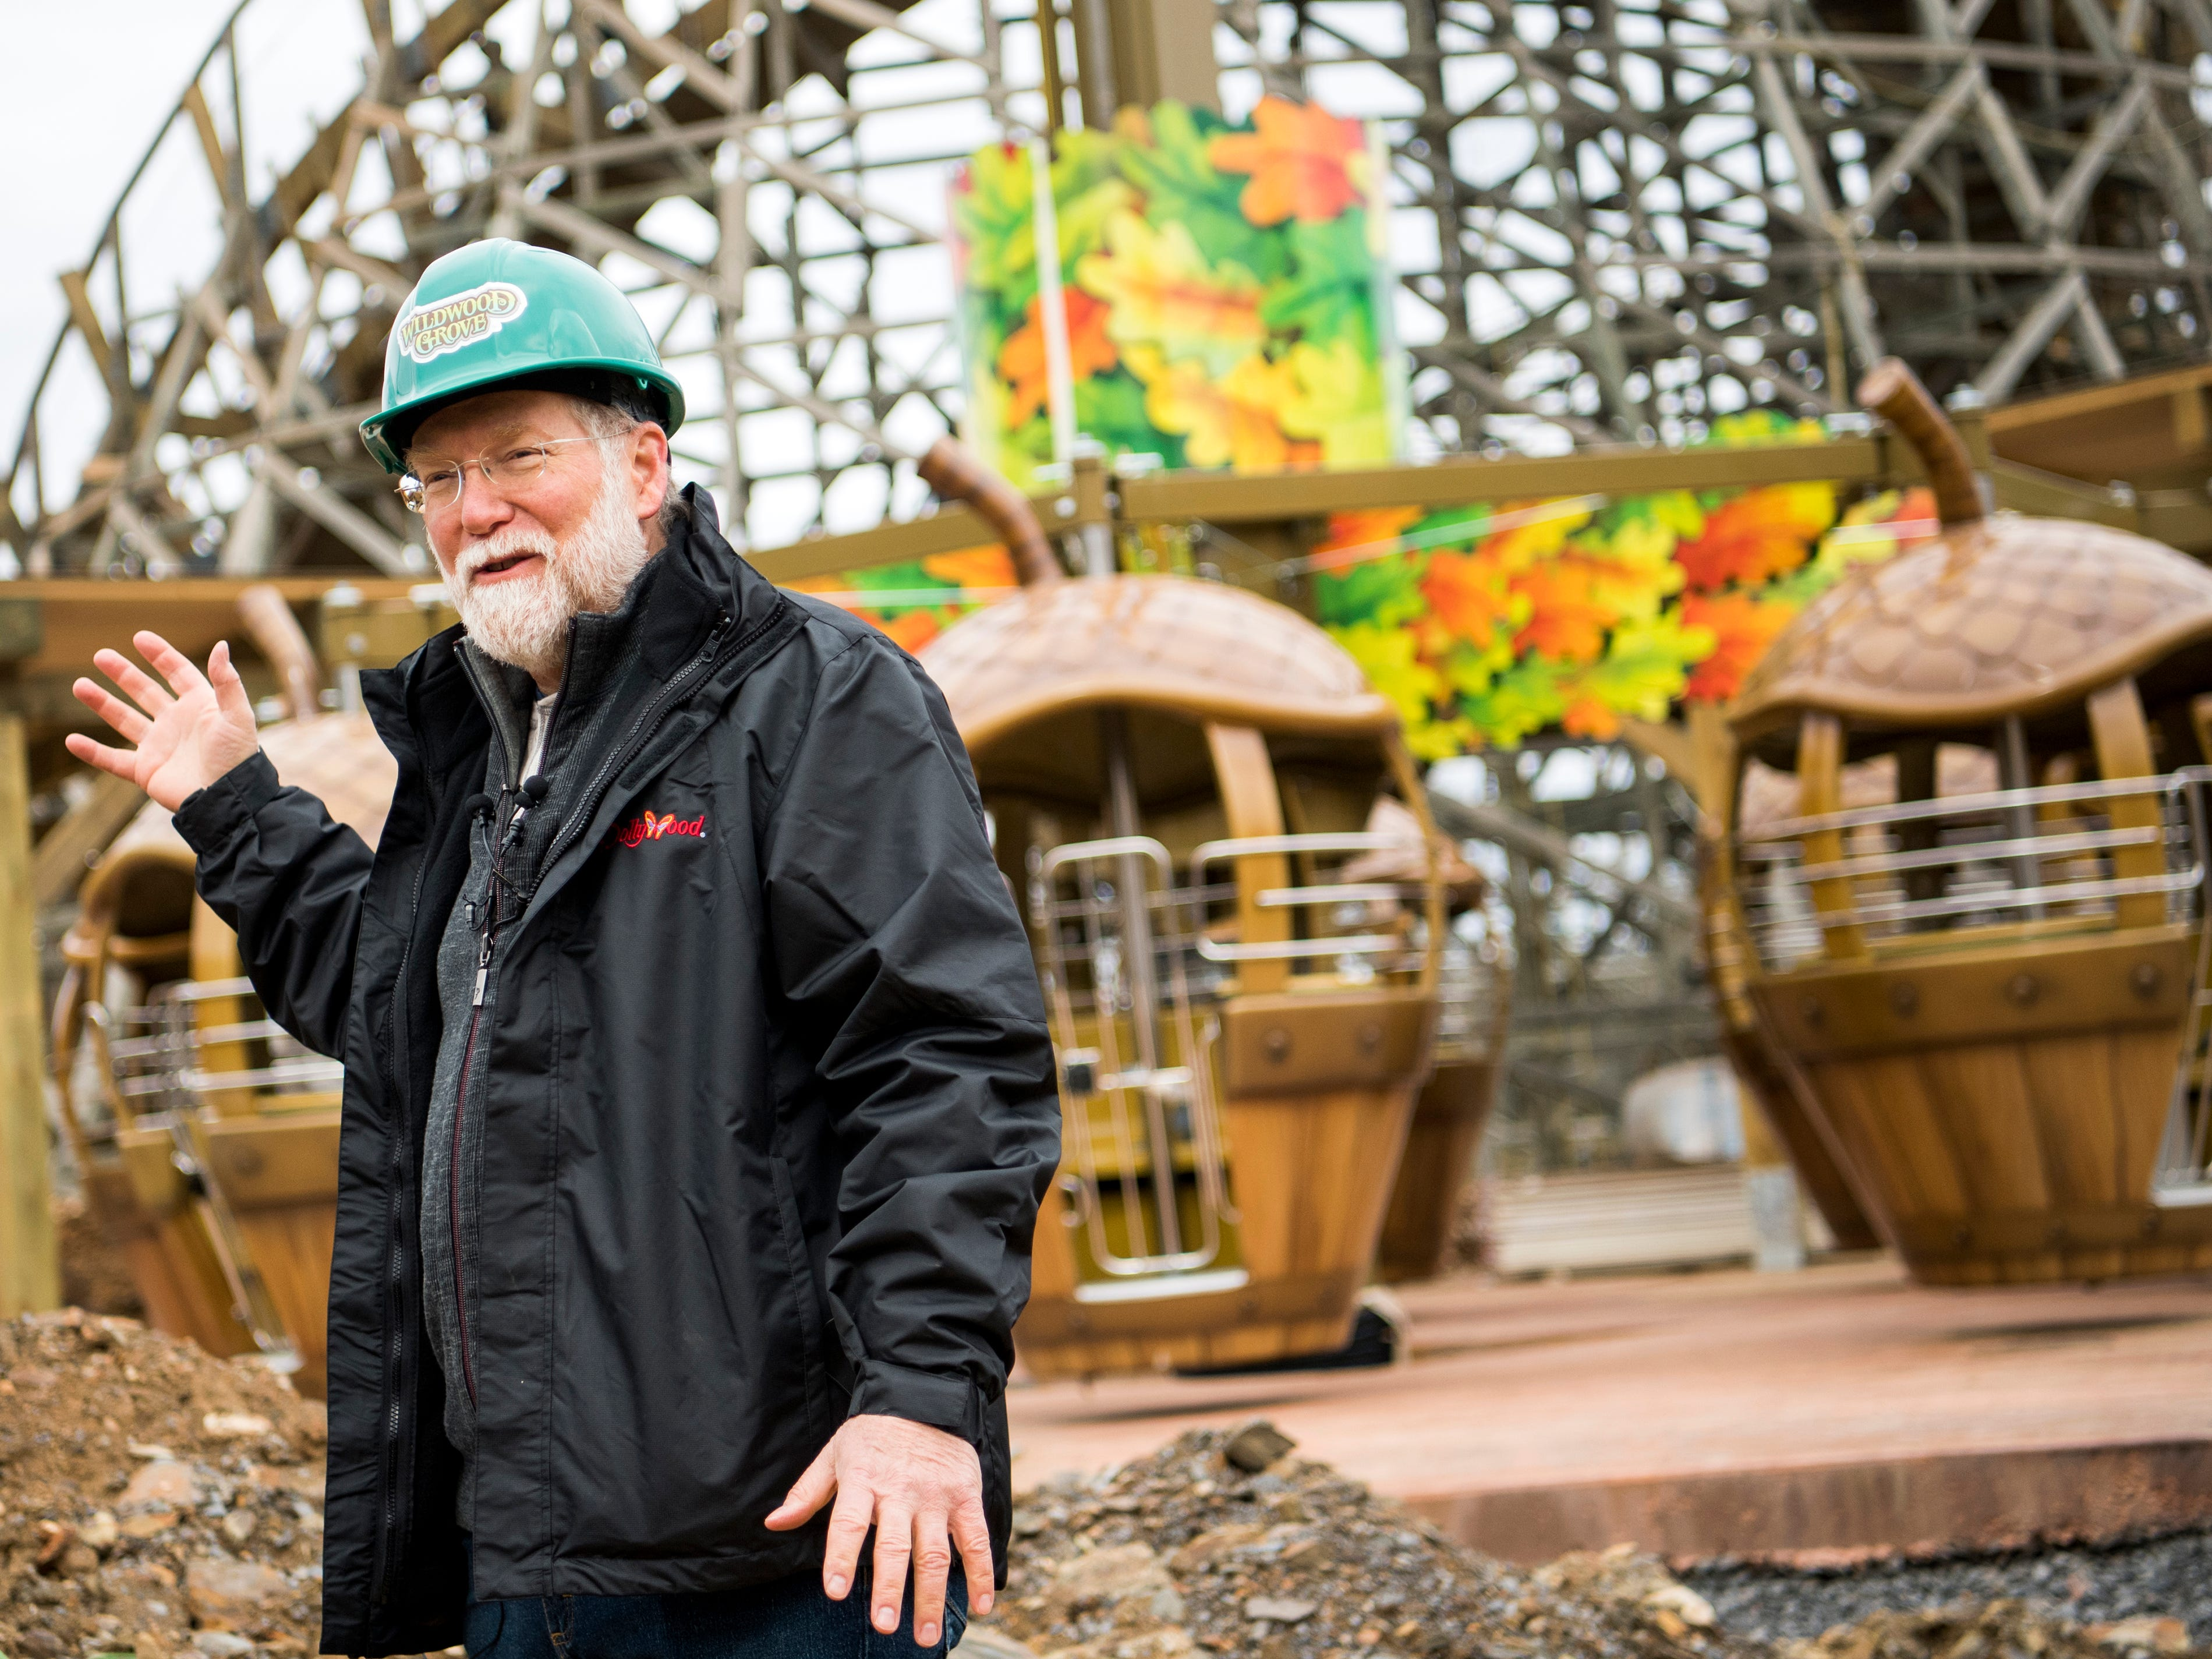 Patrick Brennan, art director for Dollywood's new Wildwood Grove area, points out features on the Treetop Tower ride during a construction site tour on Tuesday, February 19, 2019.